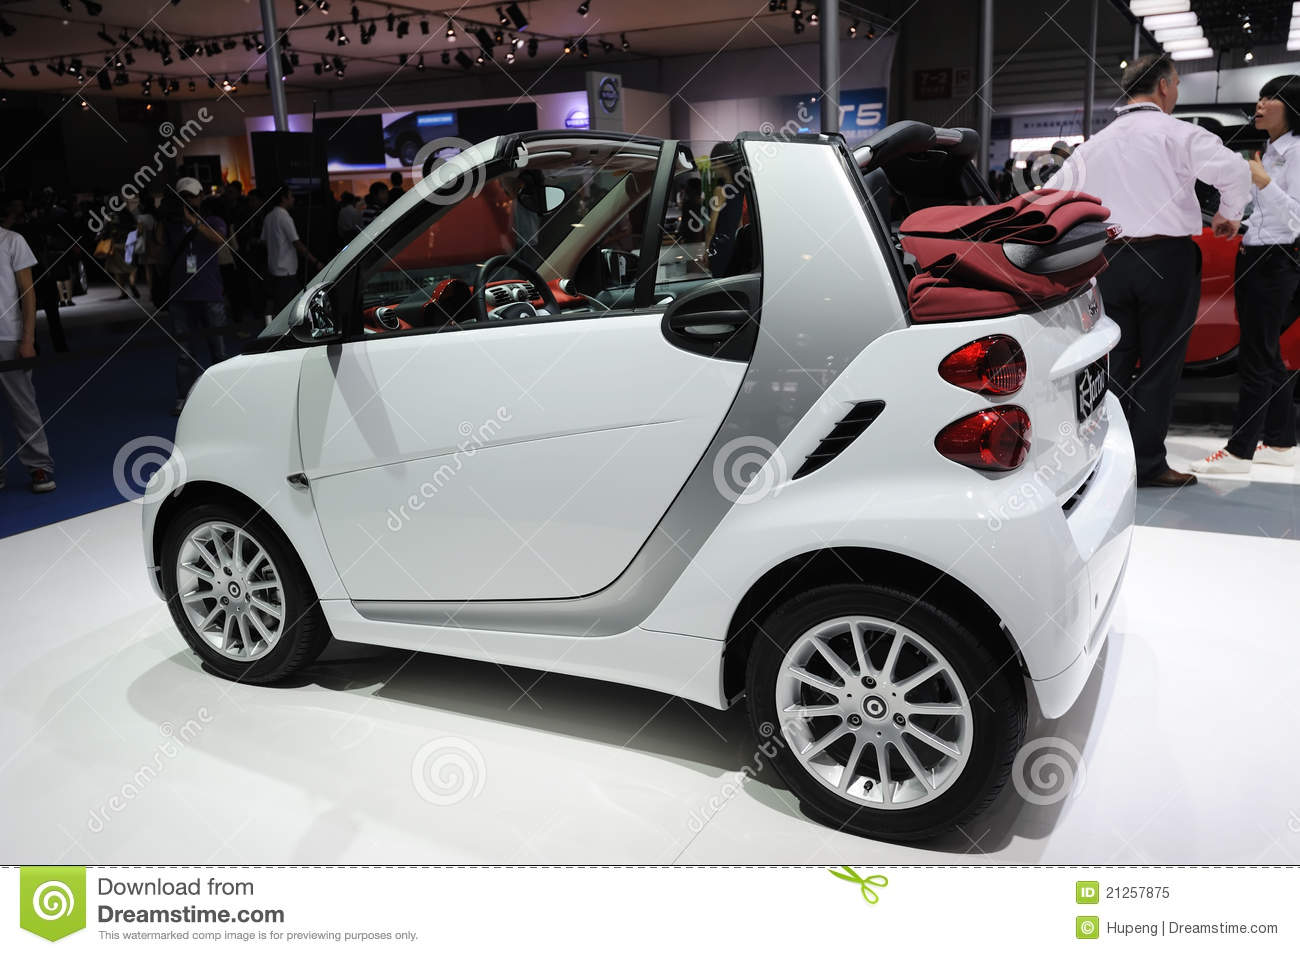 Mercedes Smart Car >> Mercedes Benz Smart Car Editorial Image Image Of Engines 21257875